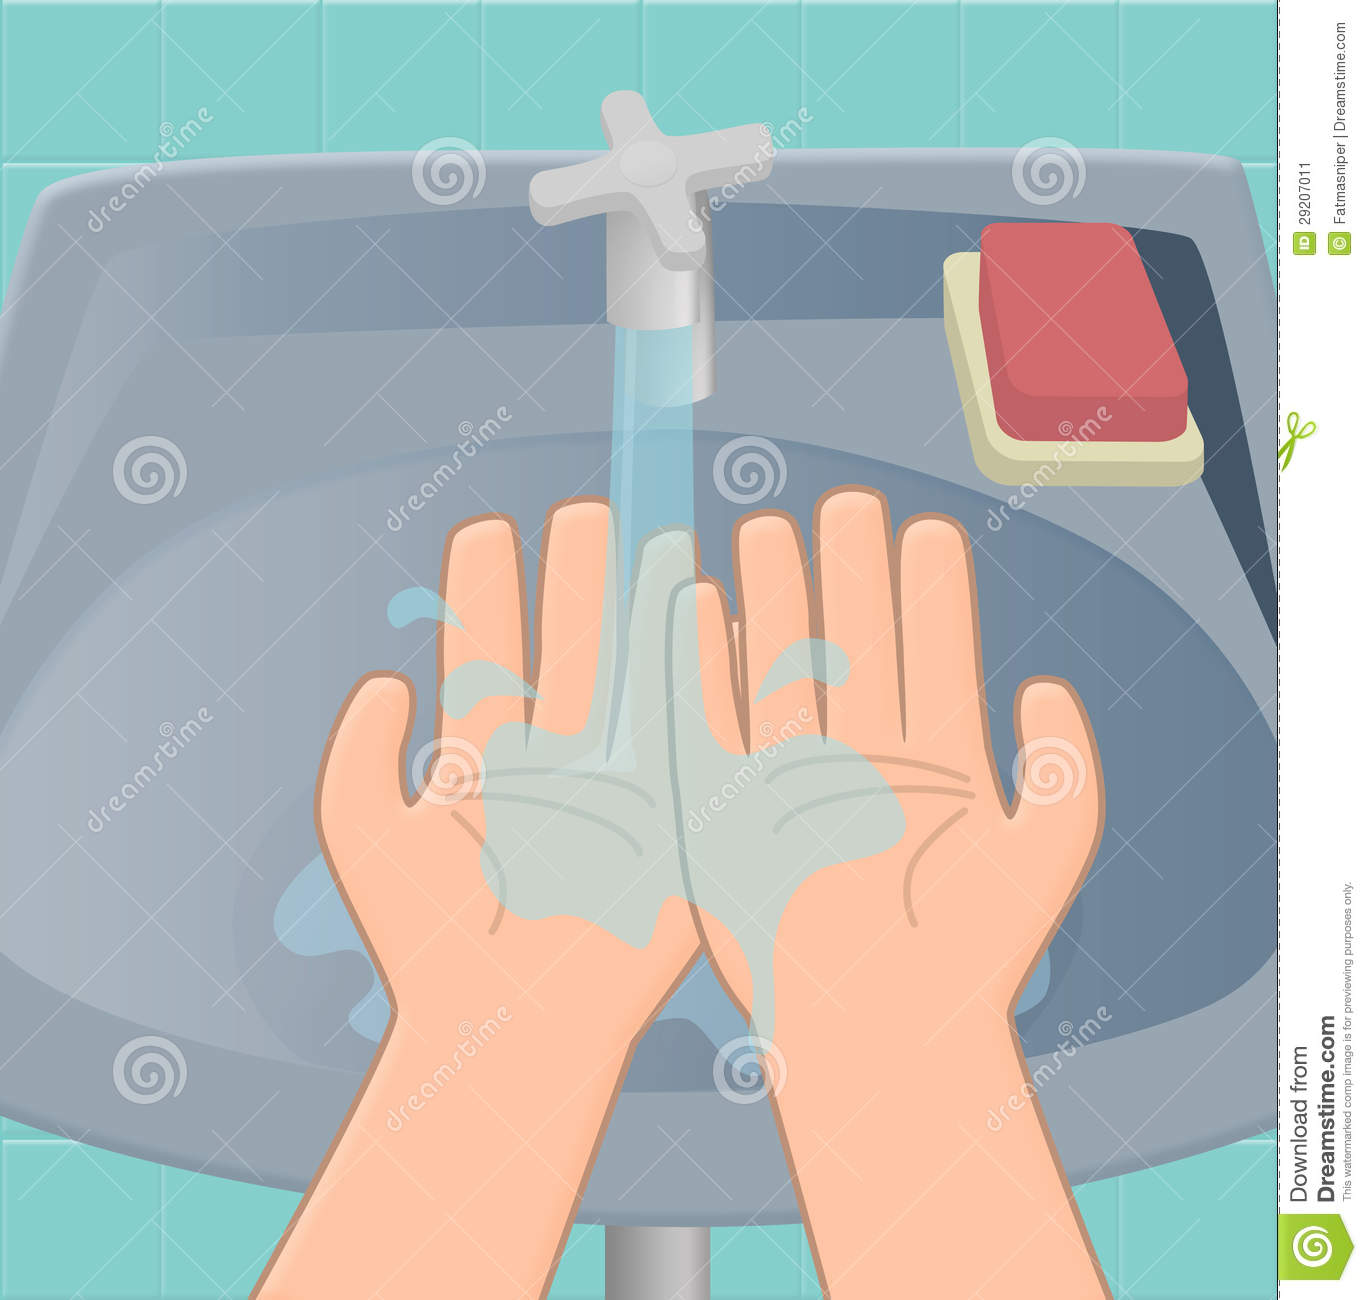 The first stage of washing hands